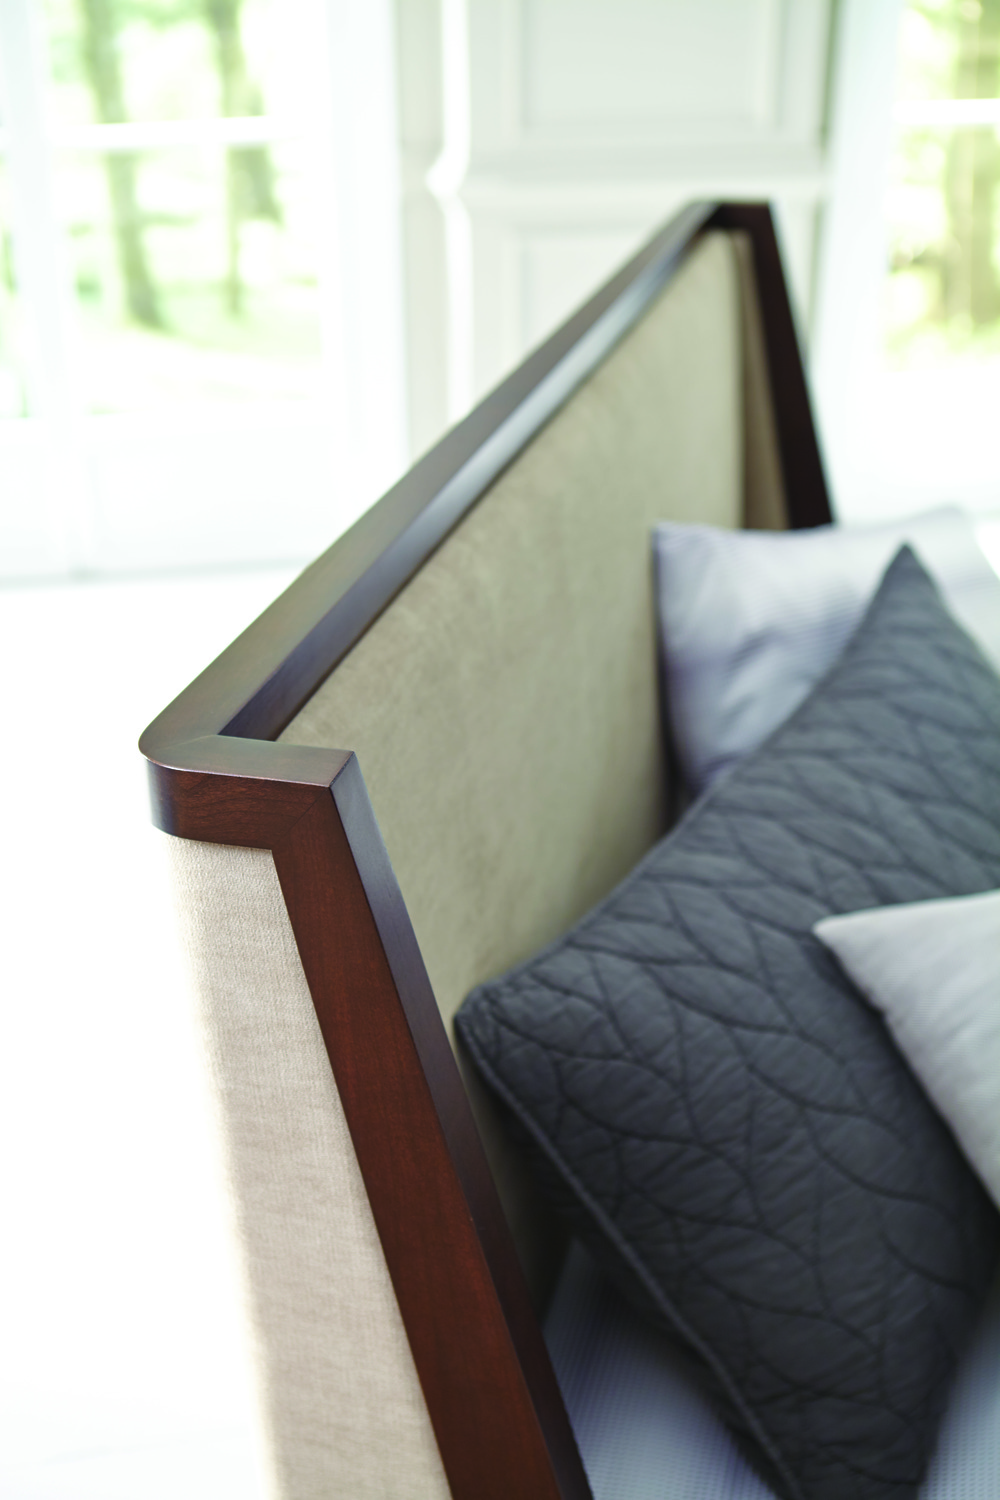 West Bros - Jensen Shelter Bed with Euro Footboard